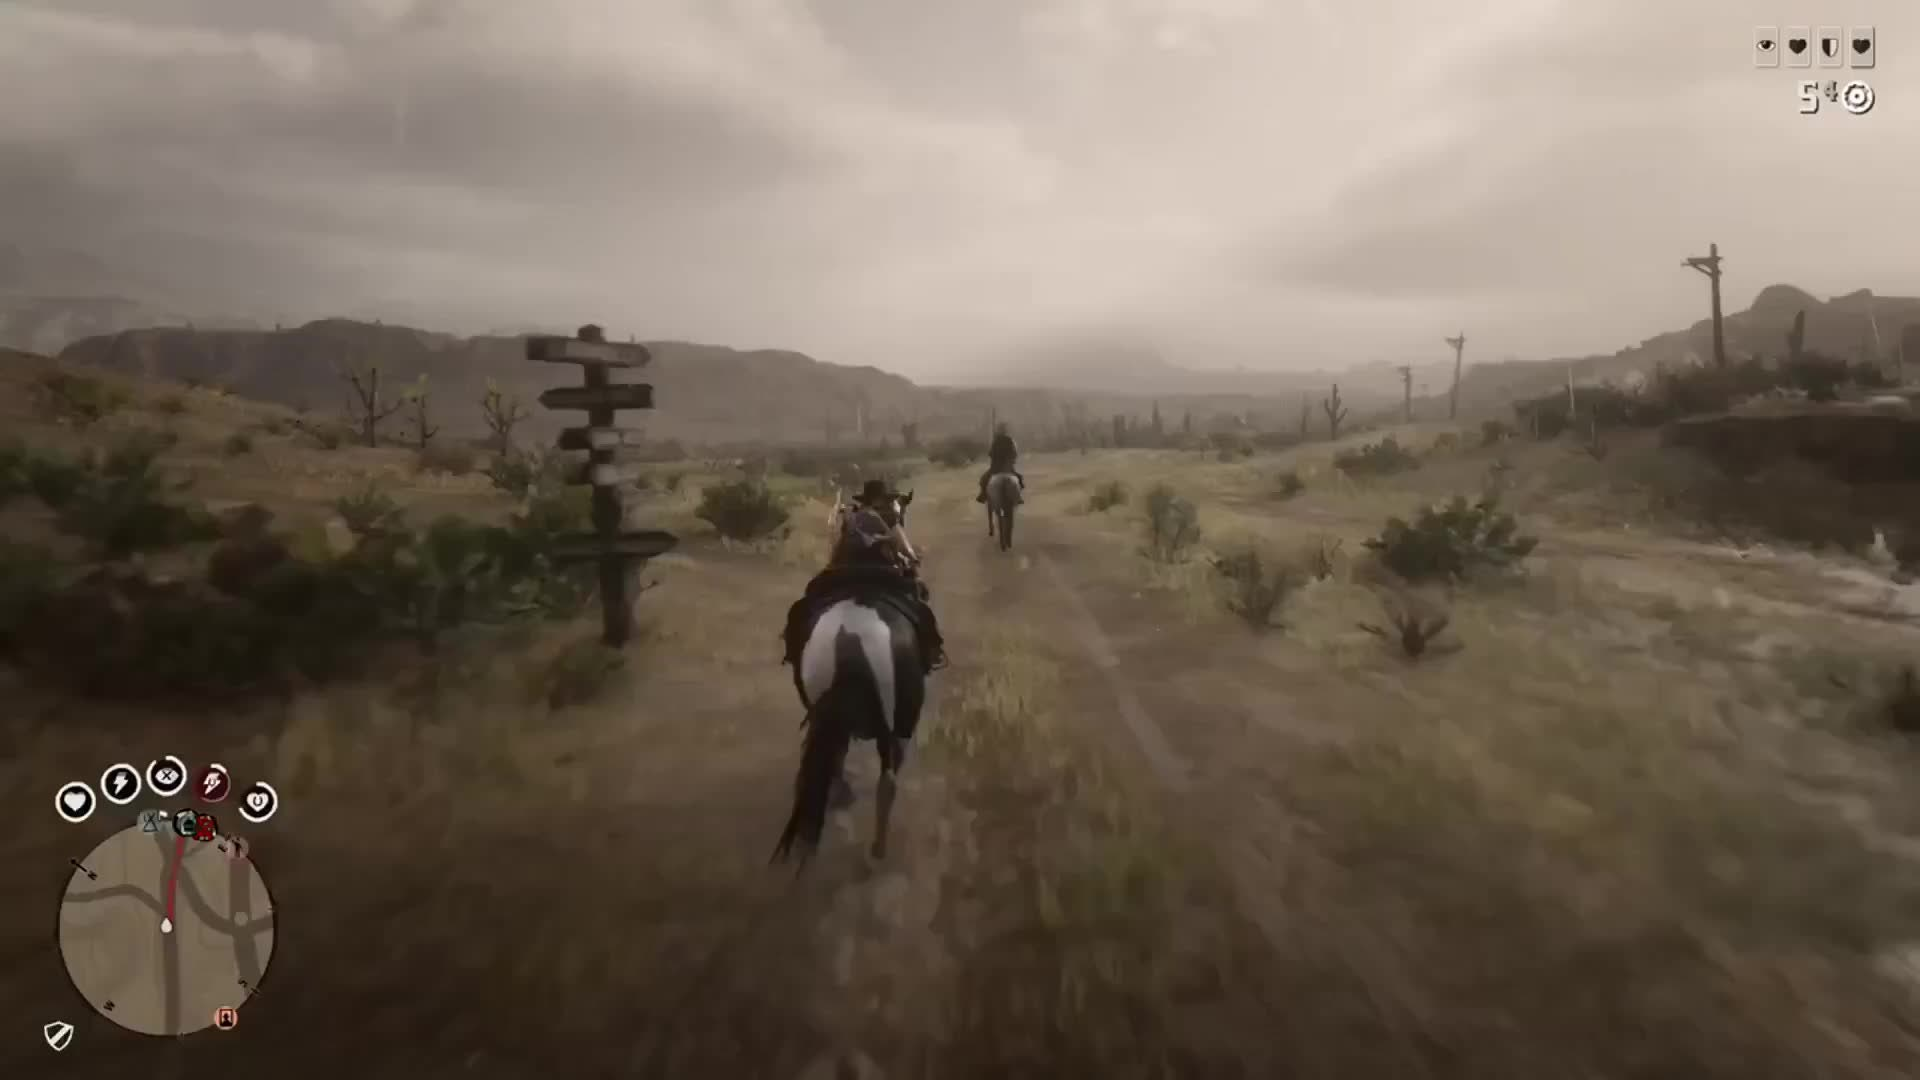 Red Dead Redemption: General - Didn't mean to ride on ya  video cover image 0